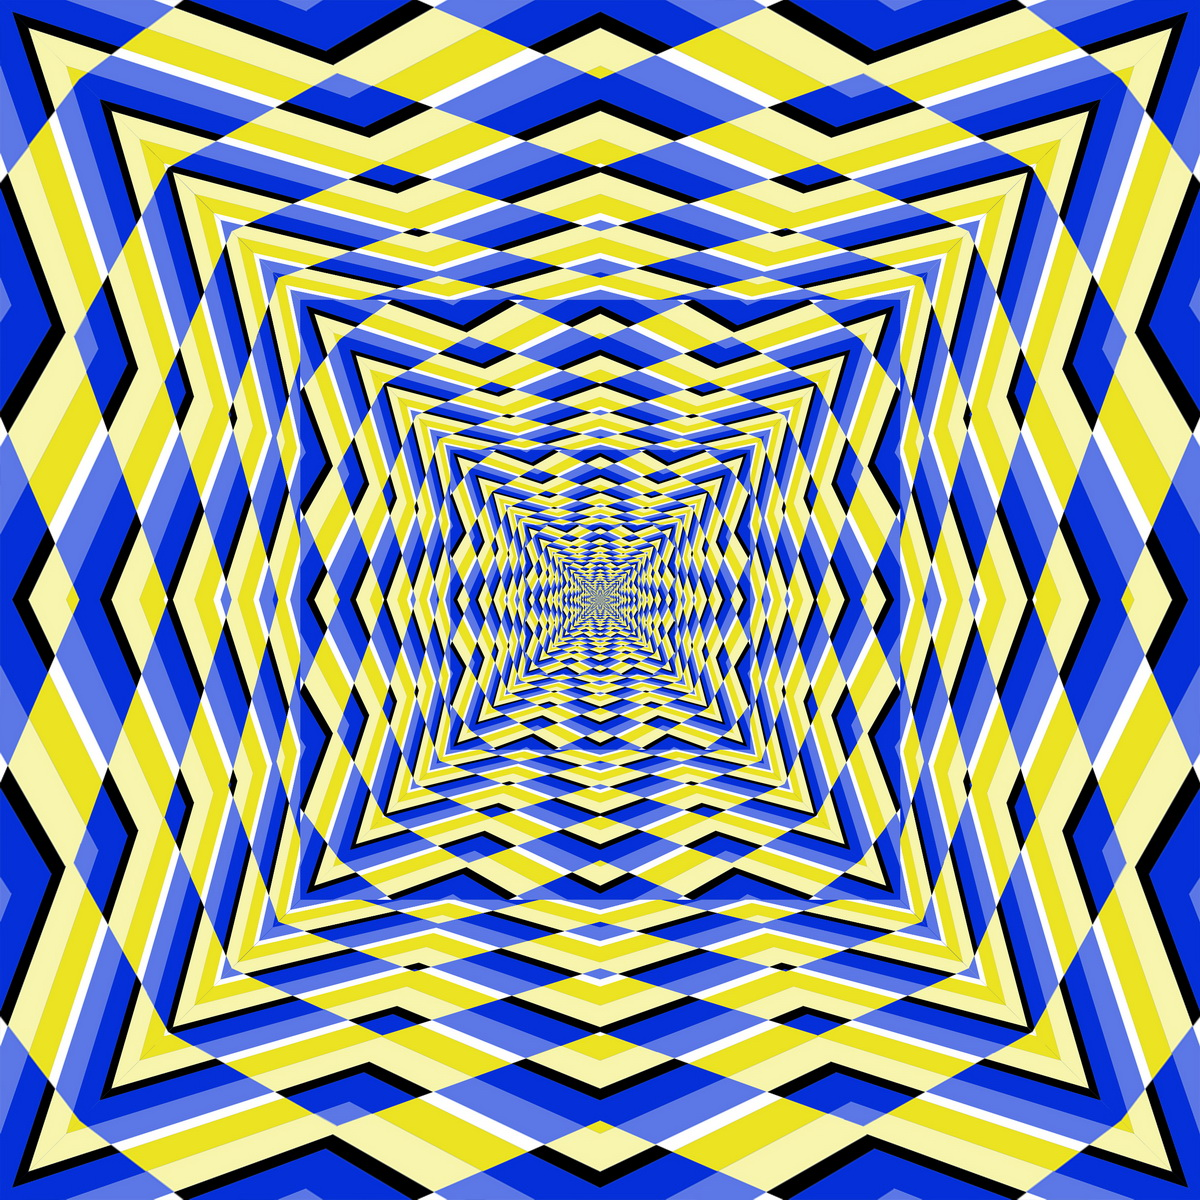 efectos opticos efectos visuales imagenes efecto visual fractals mandalas optical effects